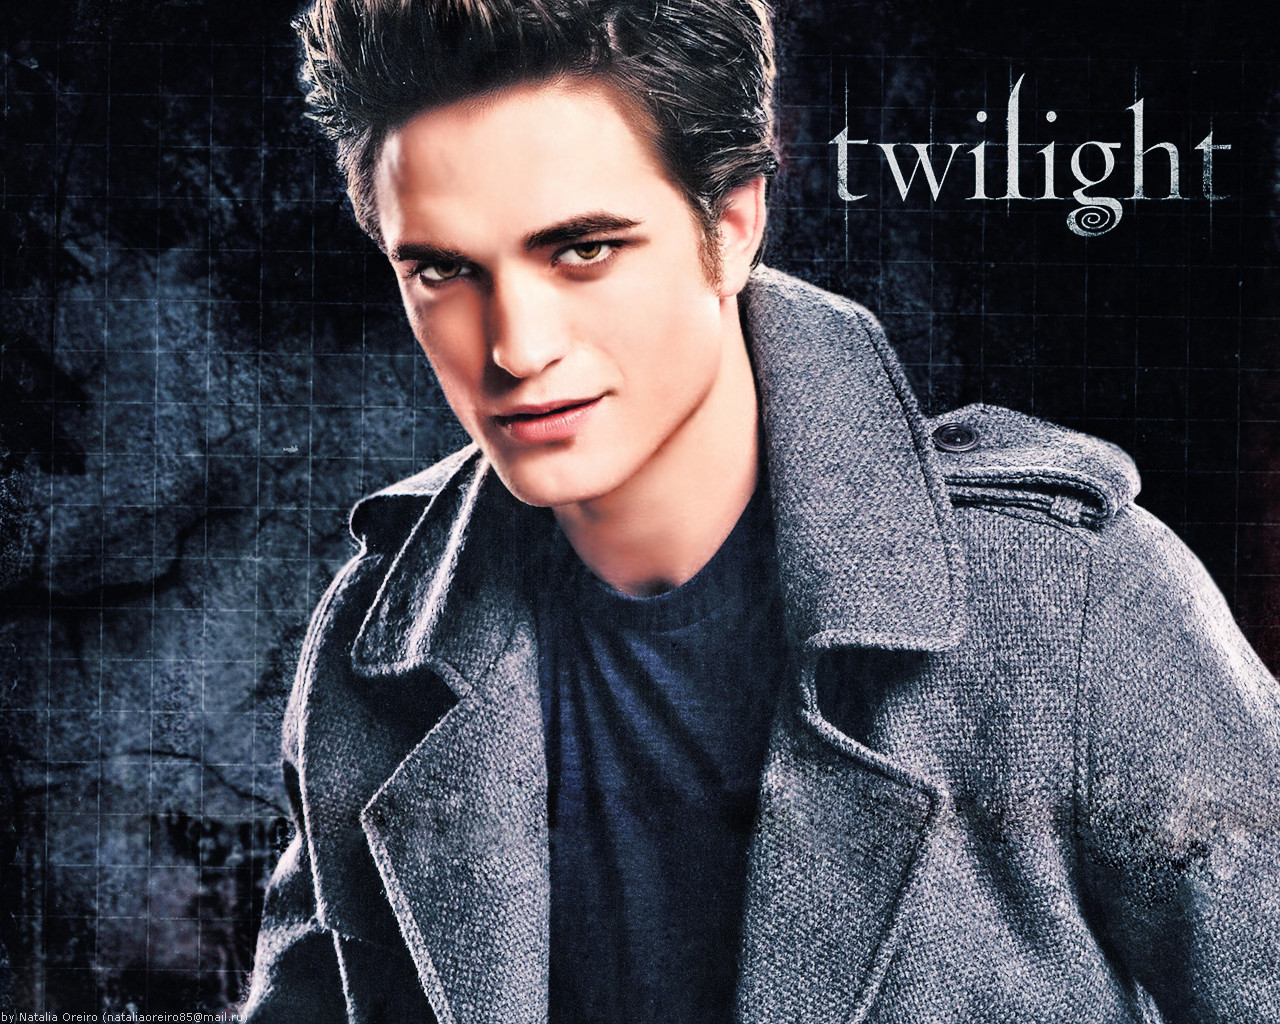 Image gallary 9 edward cullen beautiful twilight Twilight edward photos